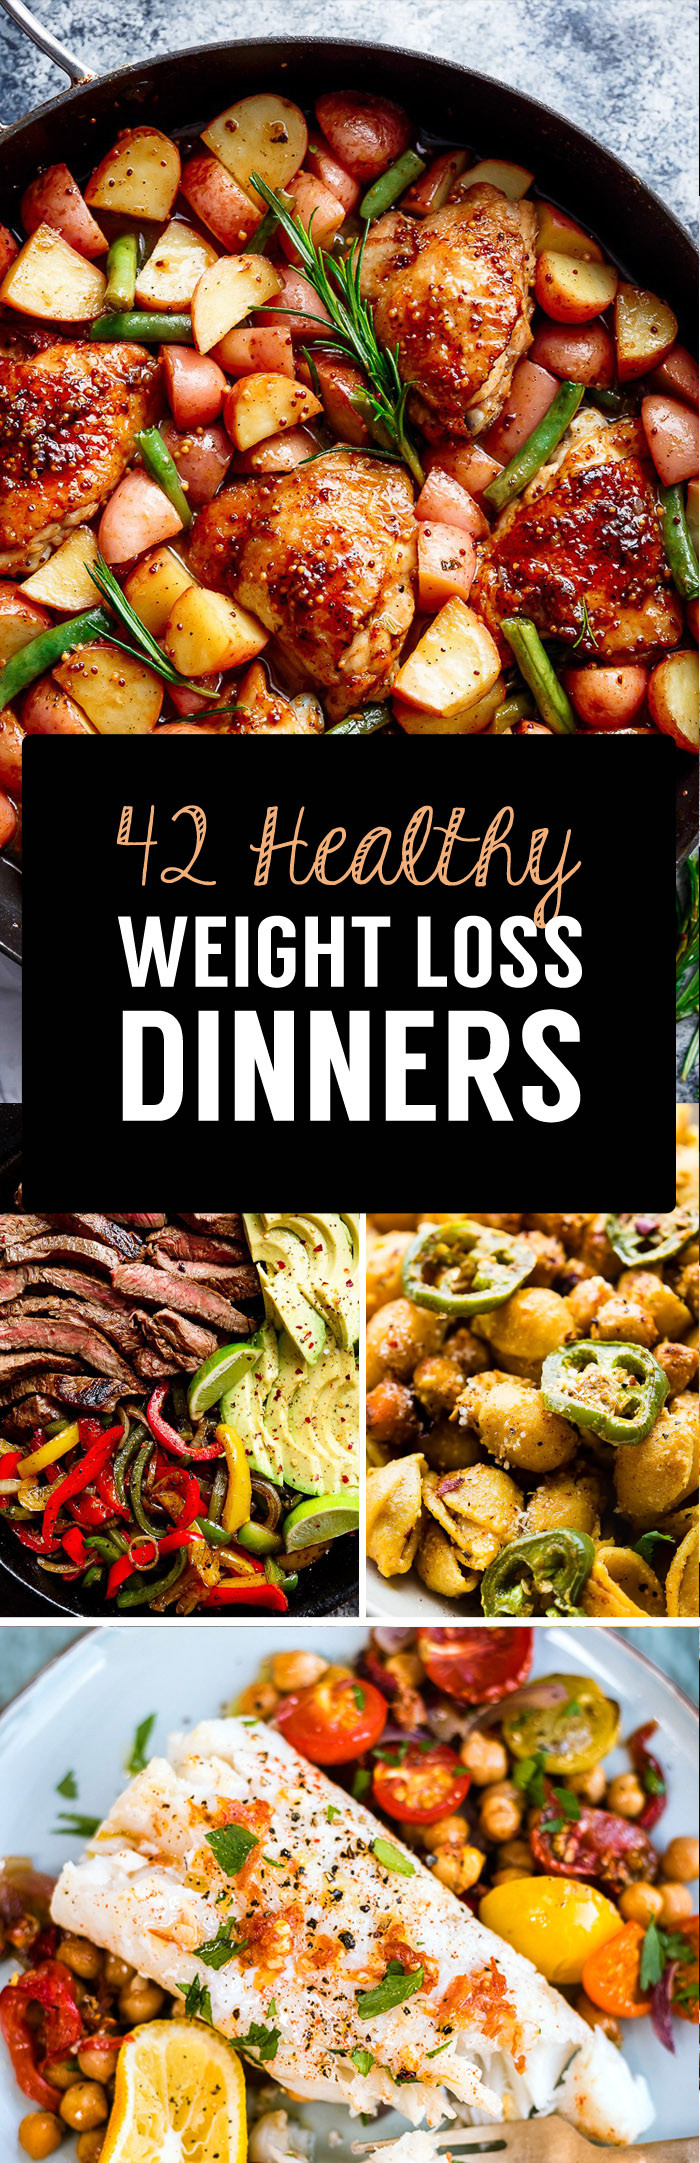 Healthy Dinners For Weight Loss  117 Weight Loss Meal Recipes For Every Time The Day